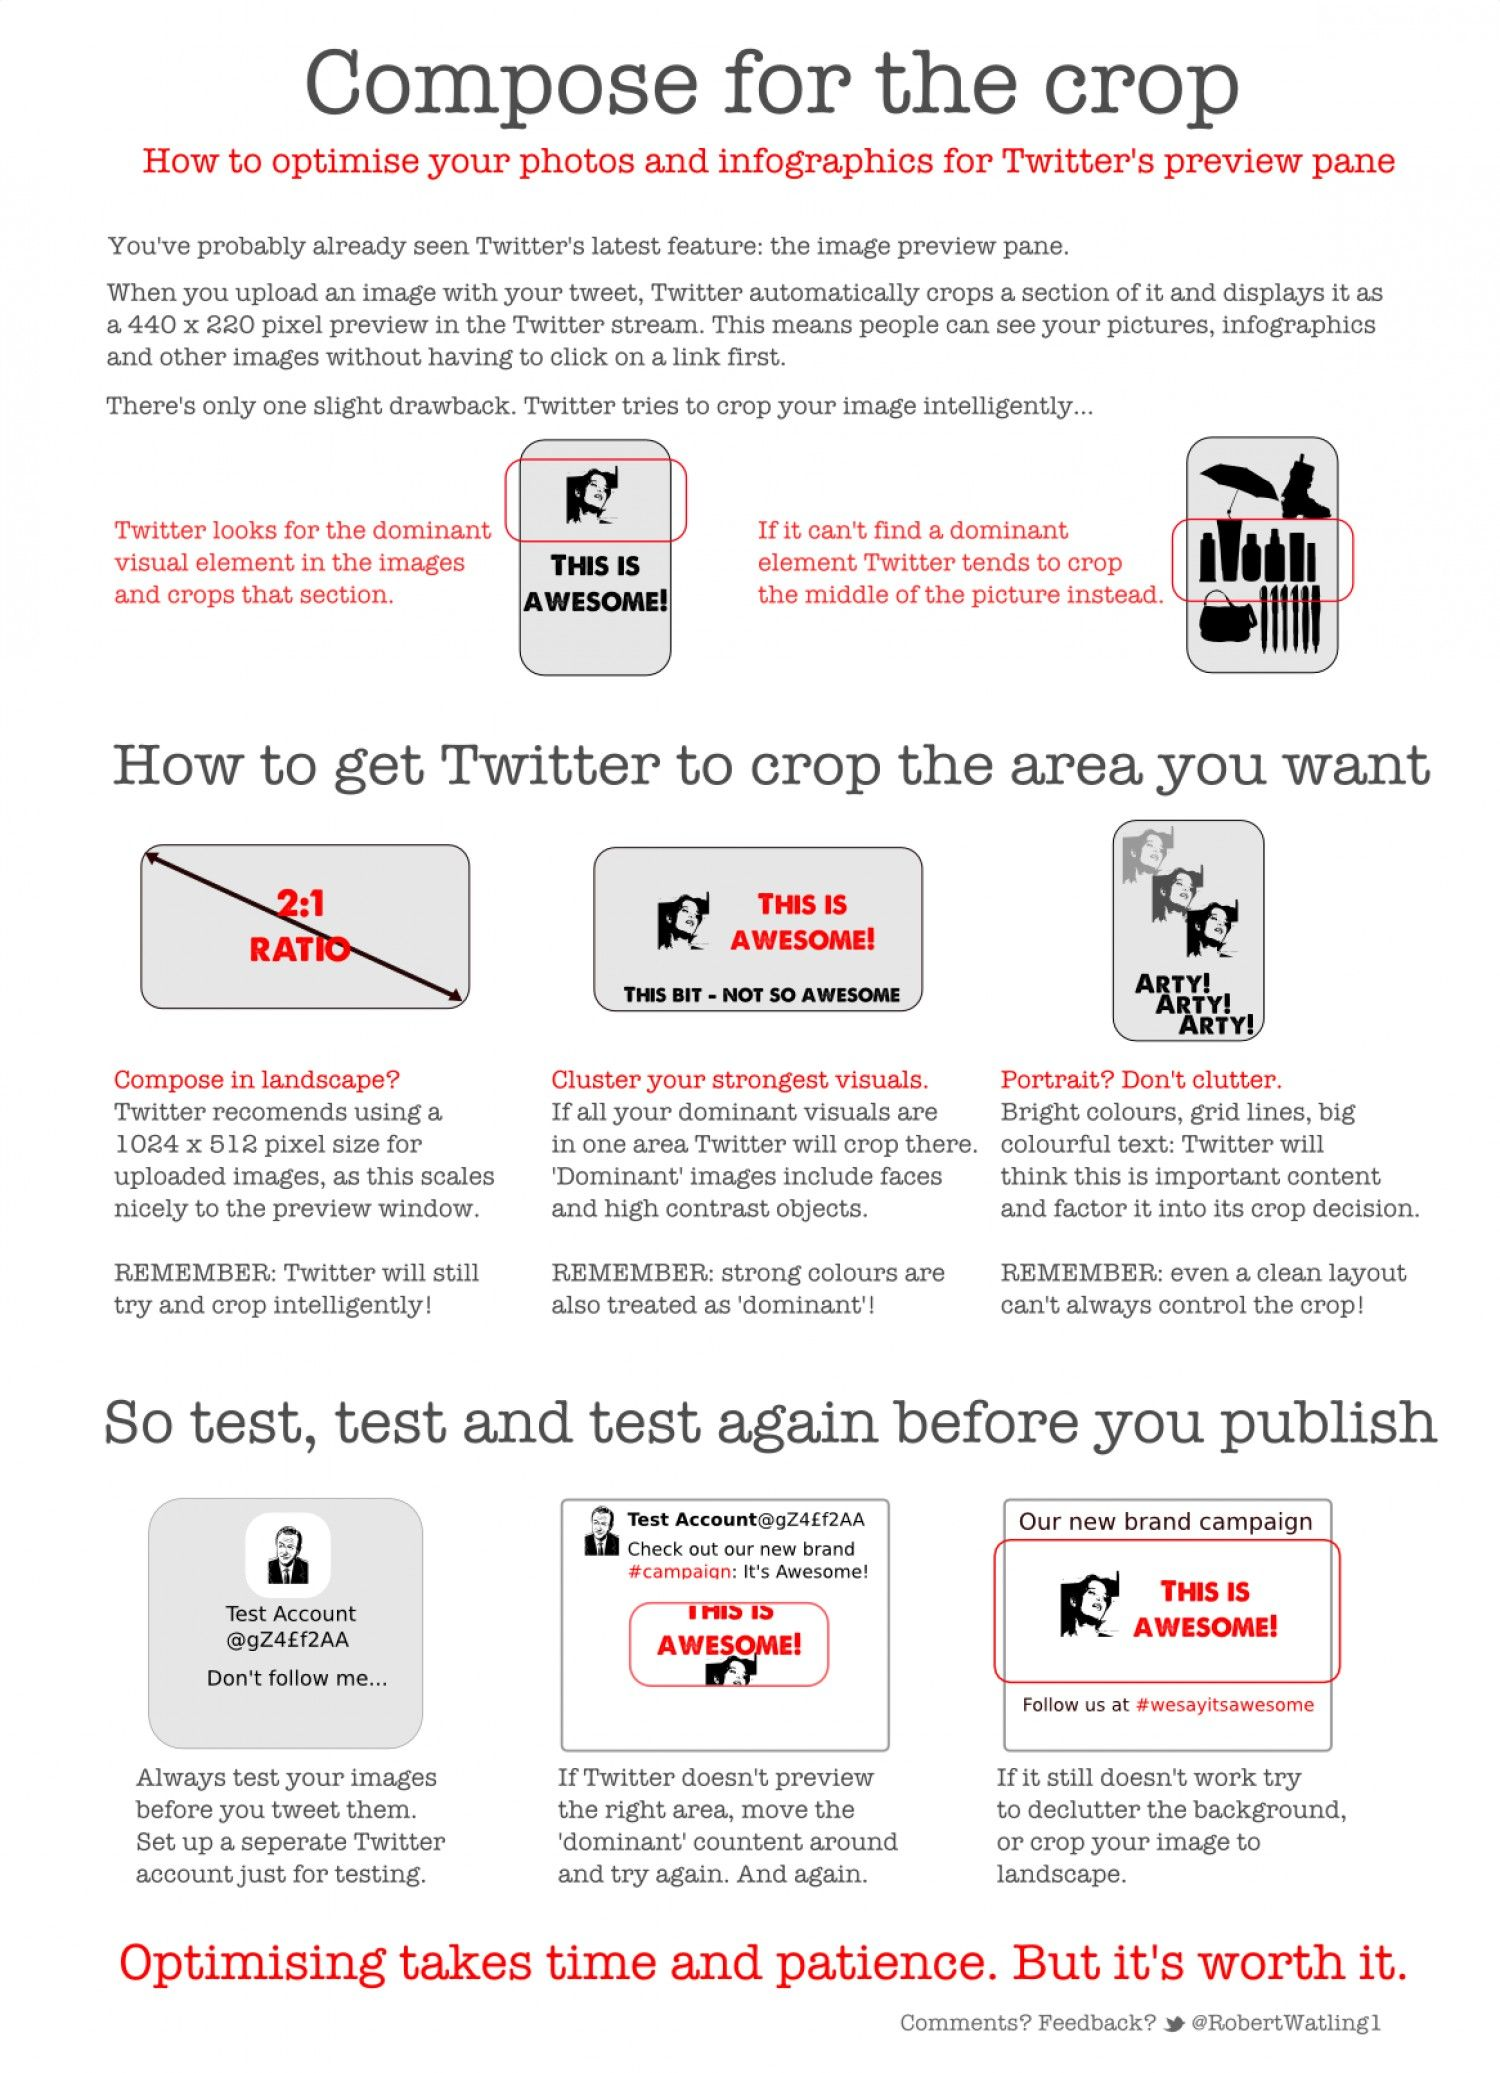 How to compose your Twitter images for the crop via Bob Watling